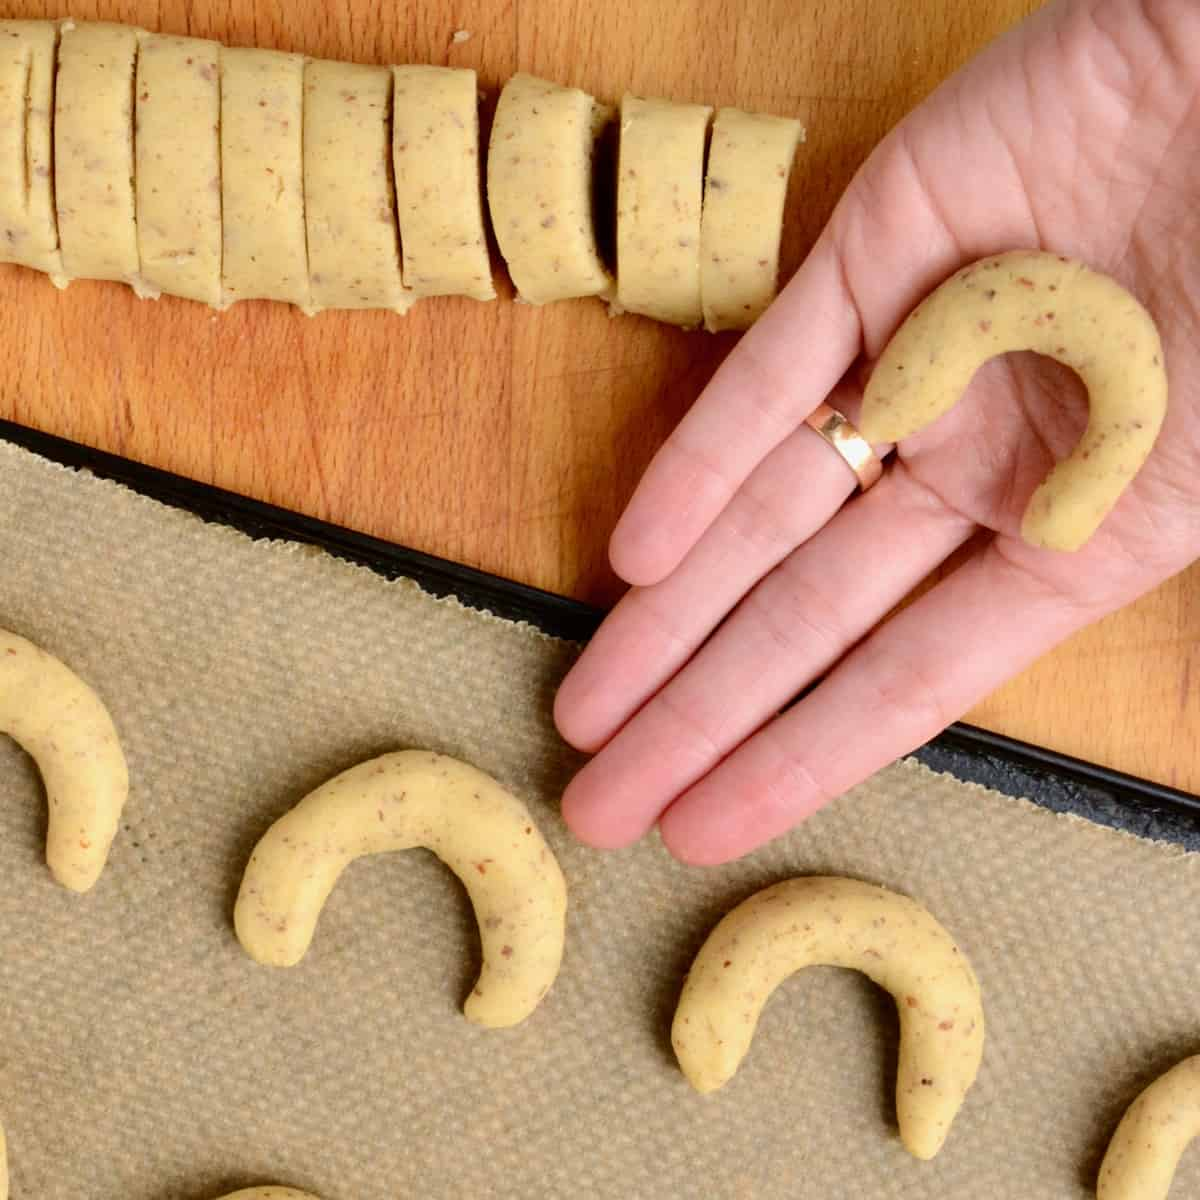 The small pieces of dough are rolled by hand into finger-long ropes and then shaped into a u-shaped crescent.